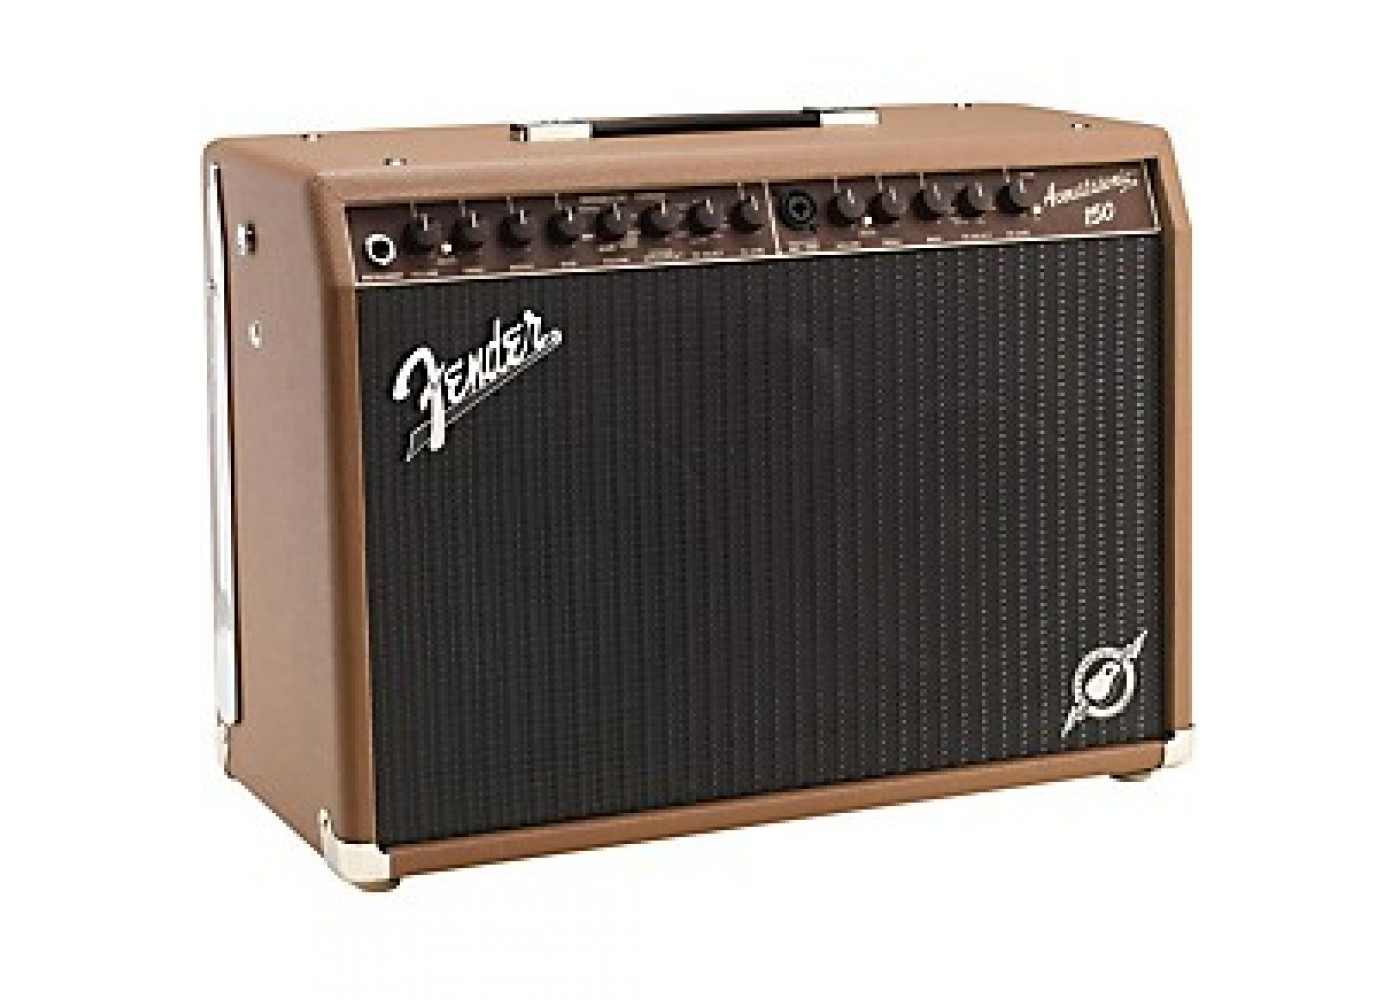 fender acoustasonic 150 acoustic guitar amplifier. Black Bedroom Furniture Sets. Home Design Ideas